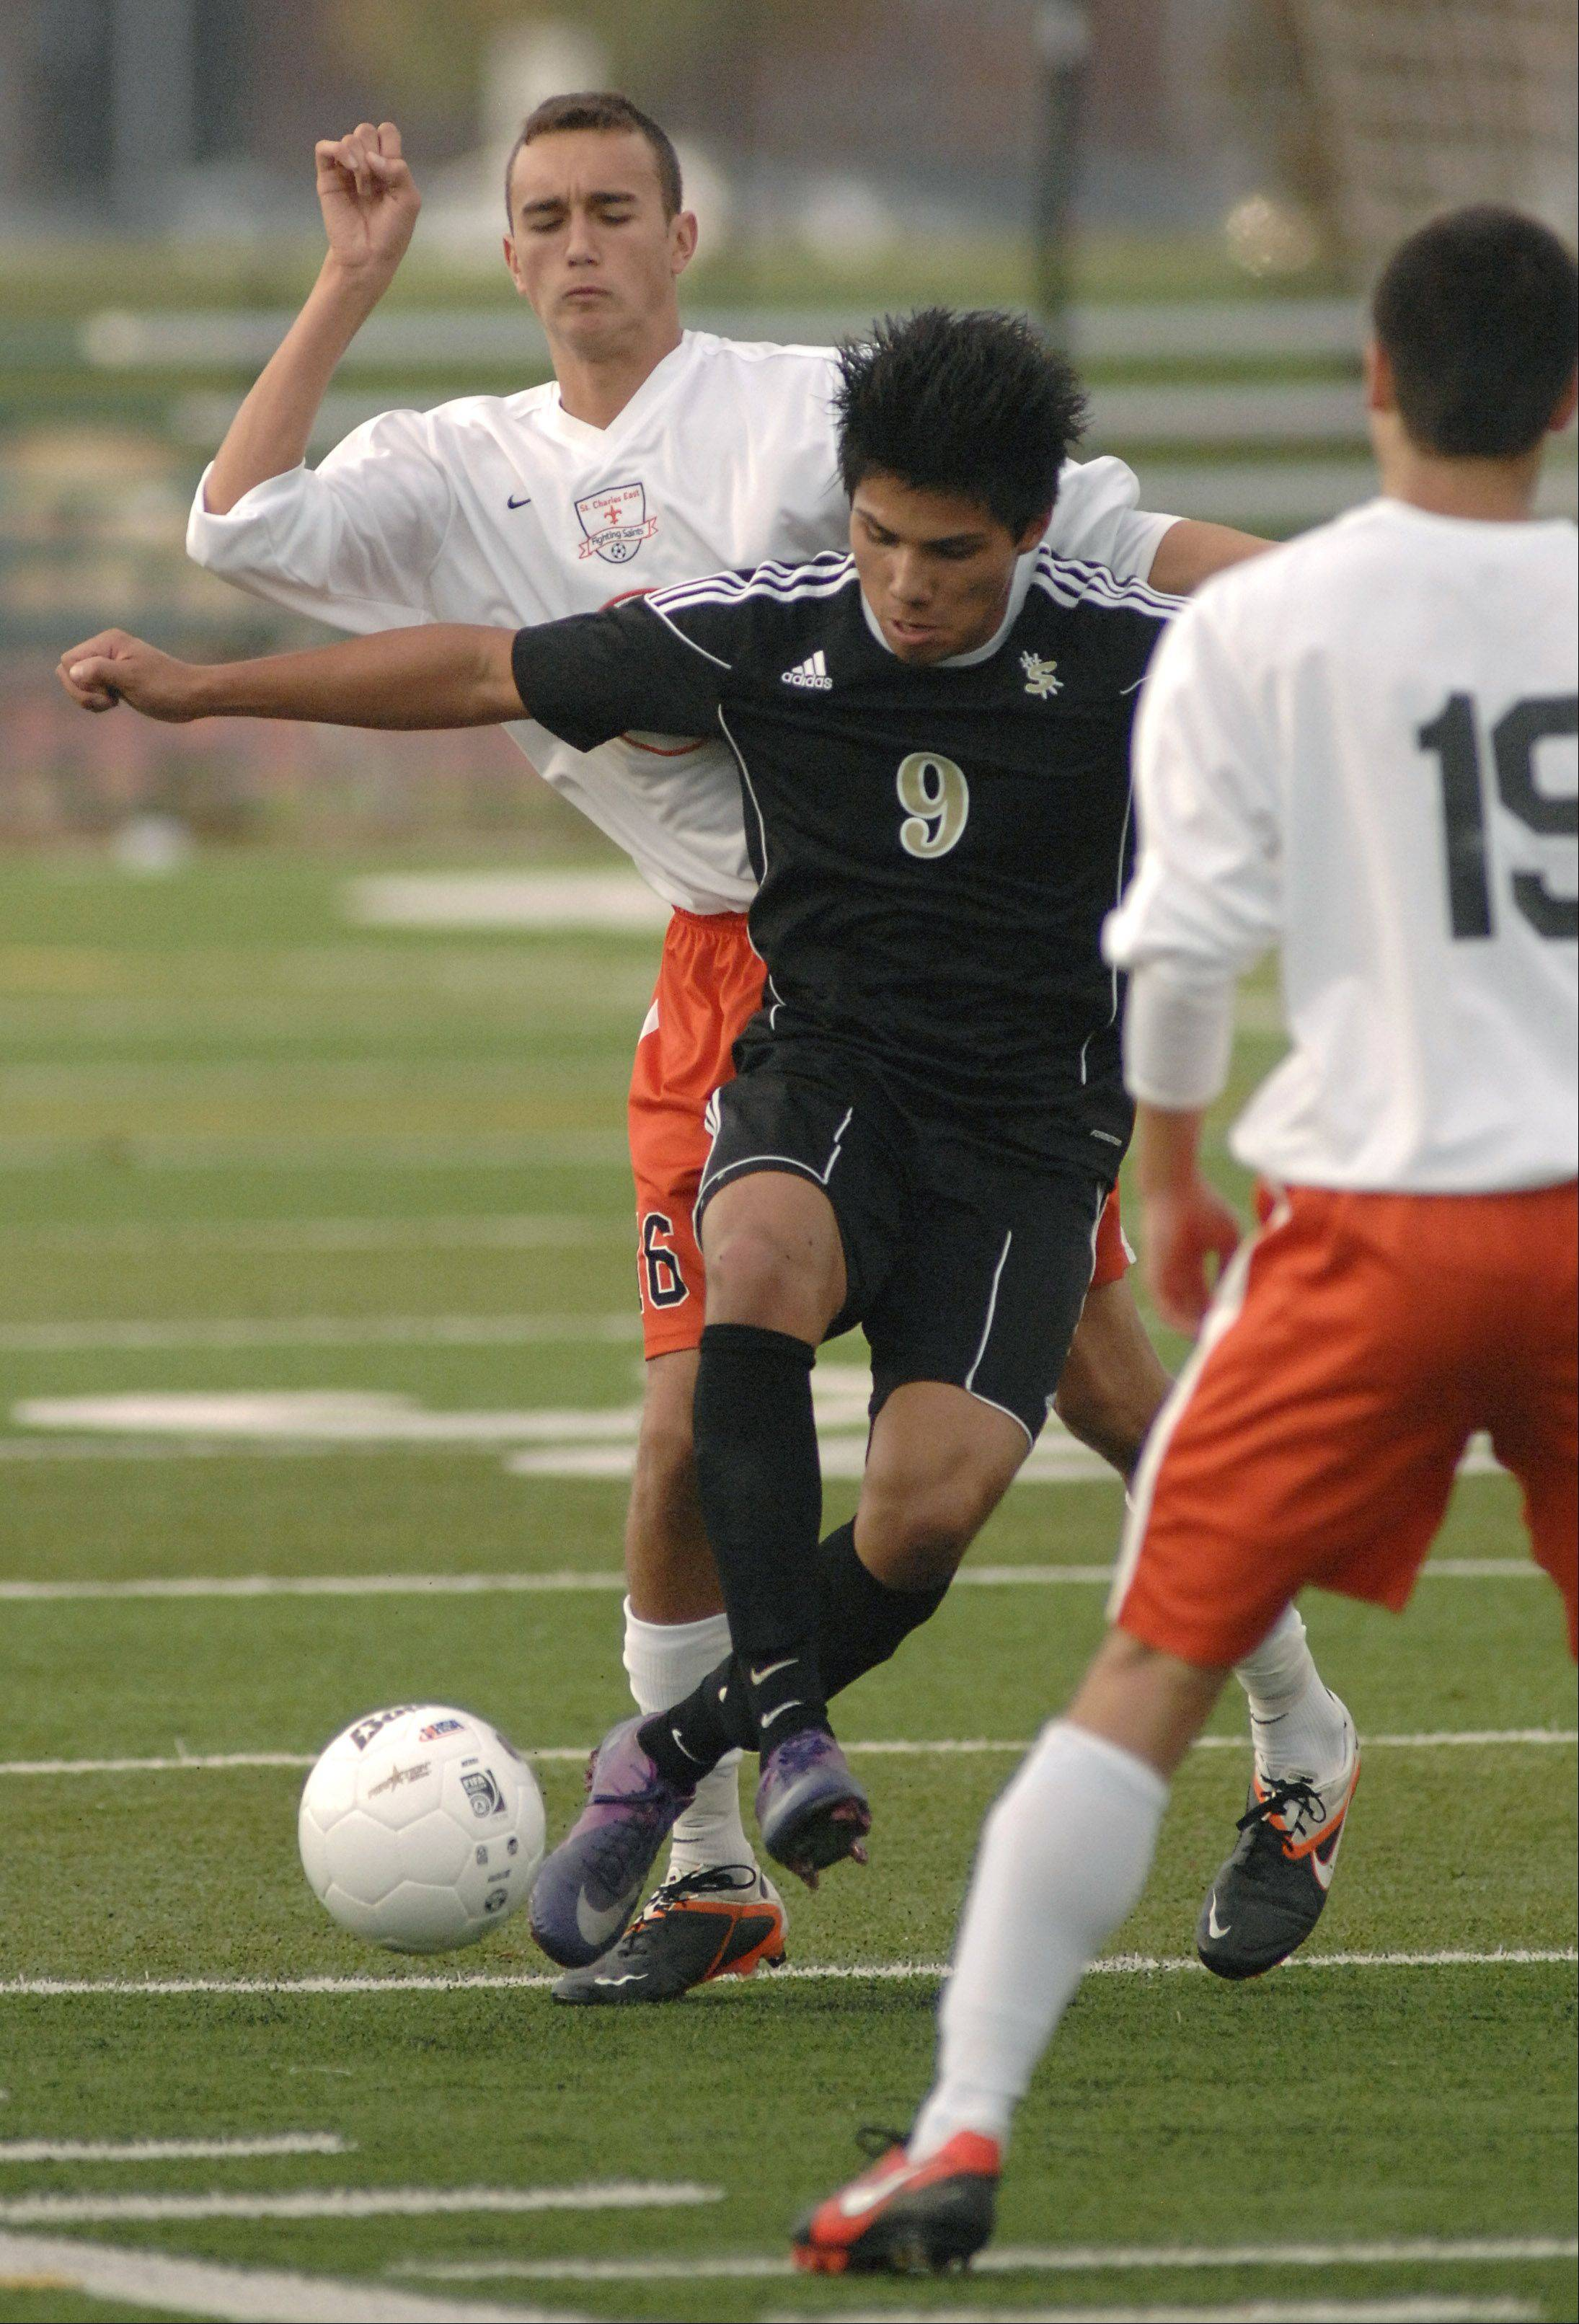 Streamwood's Mario Rodgriguez and St. Charles East's Jordan Moore fight for the ball in the first half on Tuesday October 23. 16 9 first